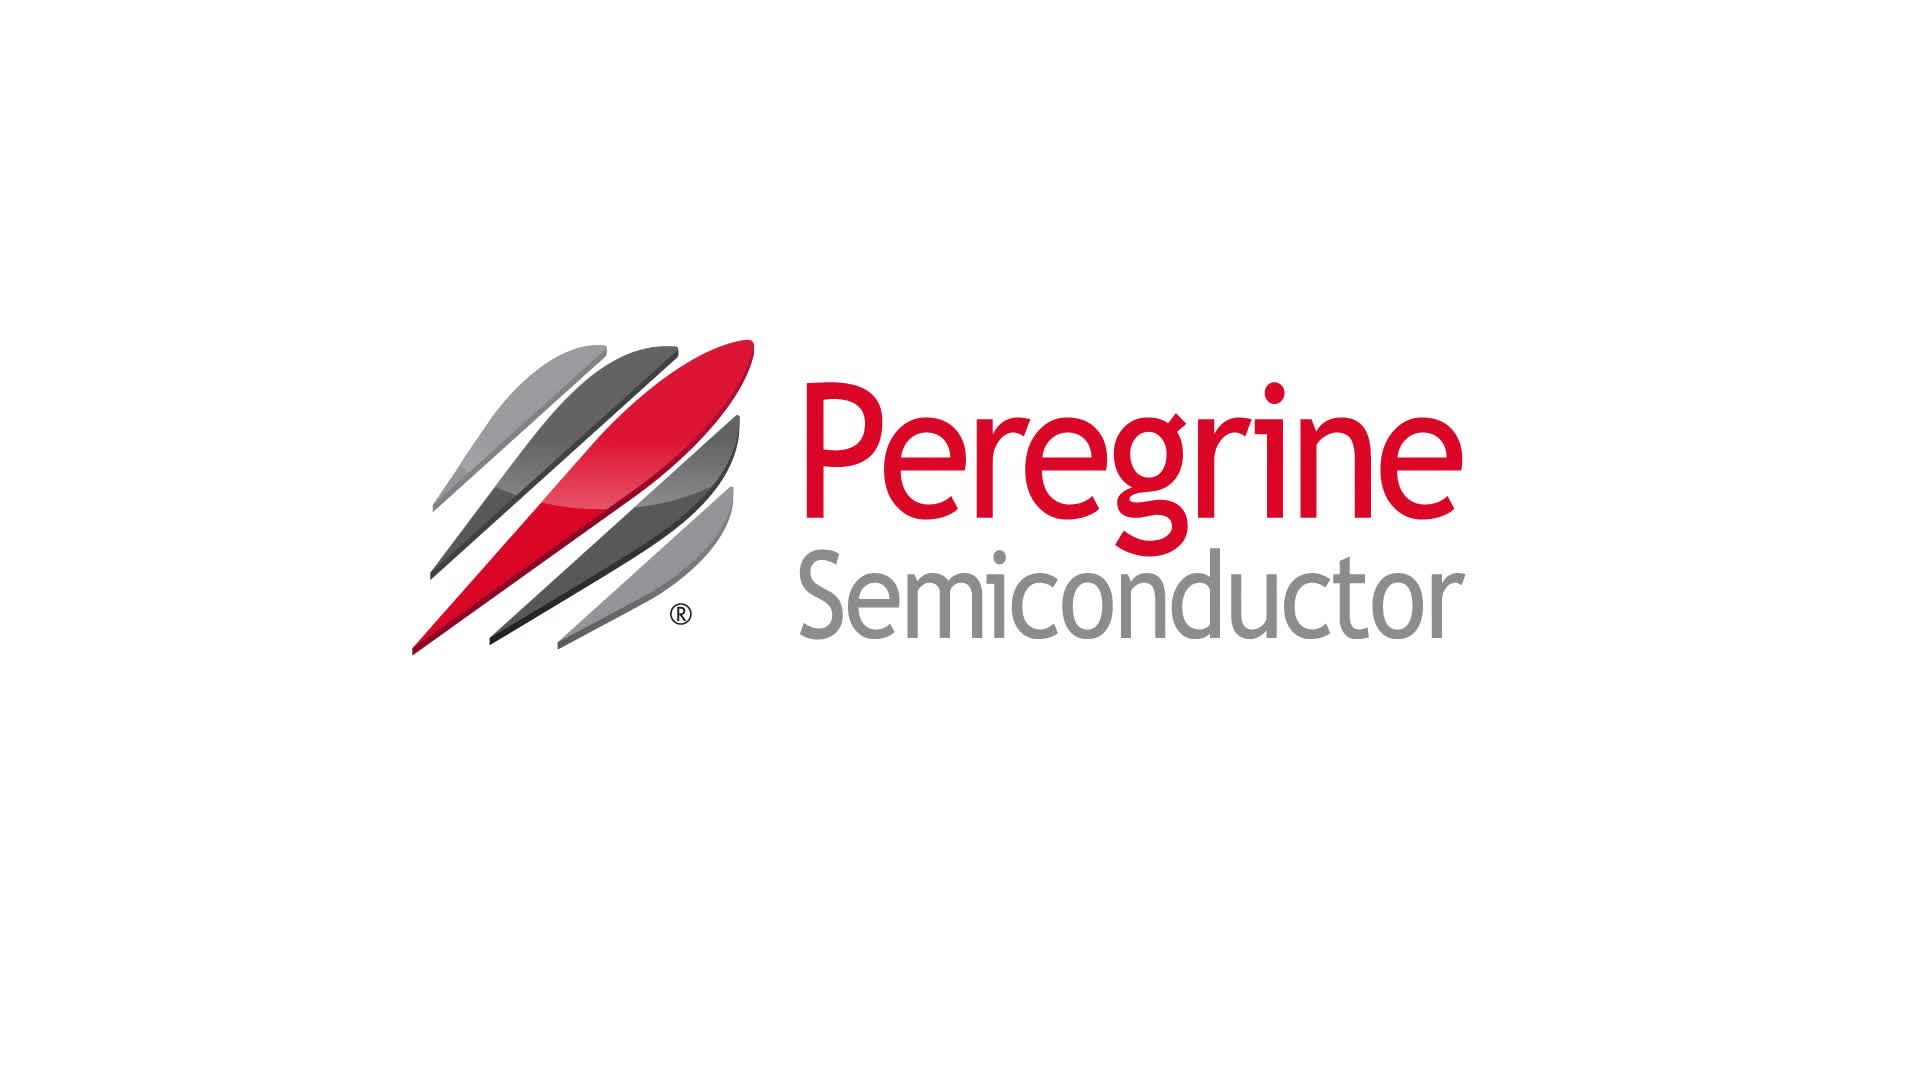 """Peregrine Semiconductor believes in the """"Strength of Numbers"""". More than 4,000 customers depend on Peregrine's worldwide sales team with dedicated offices in San Diego, Chicago, China, Korea and the United Kingdom."""